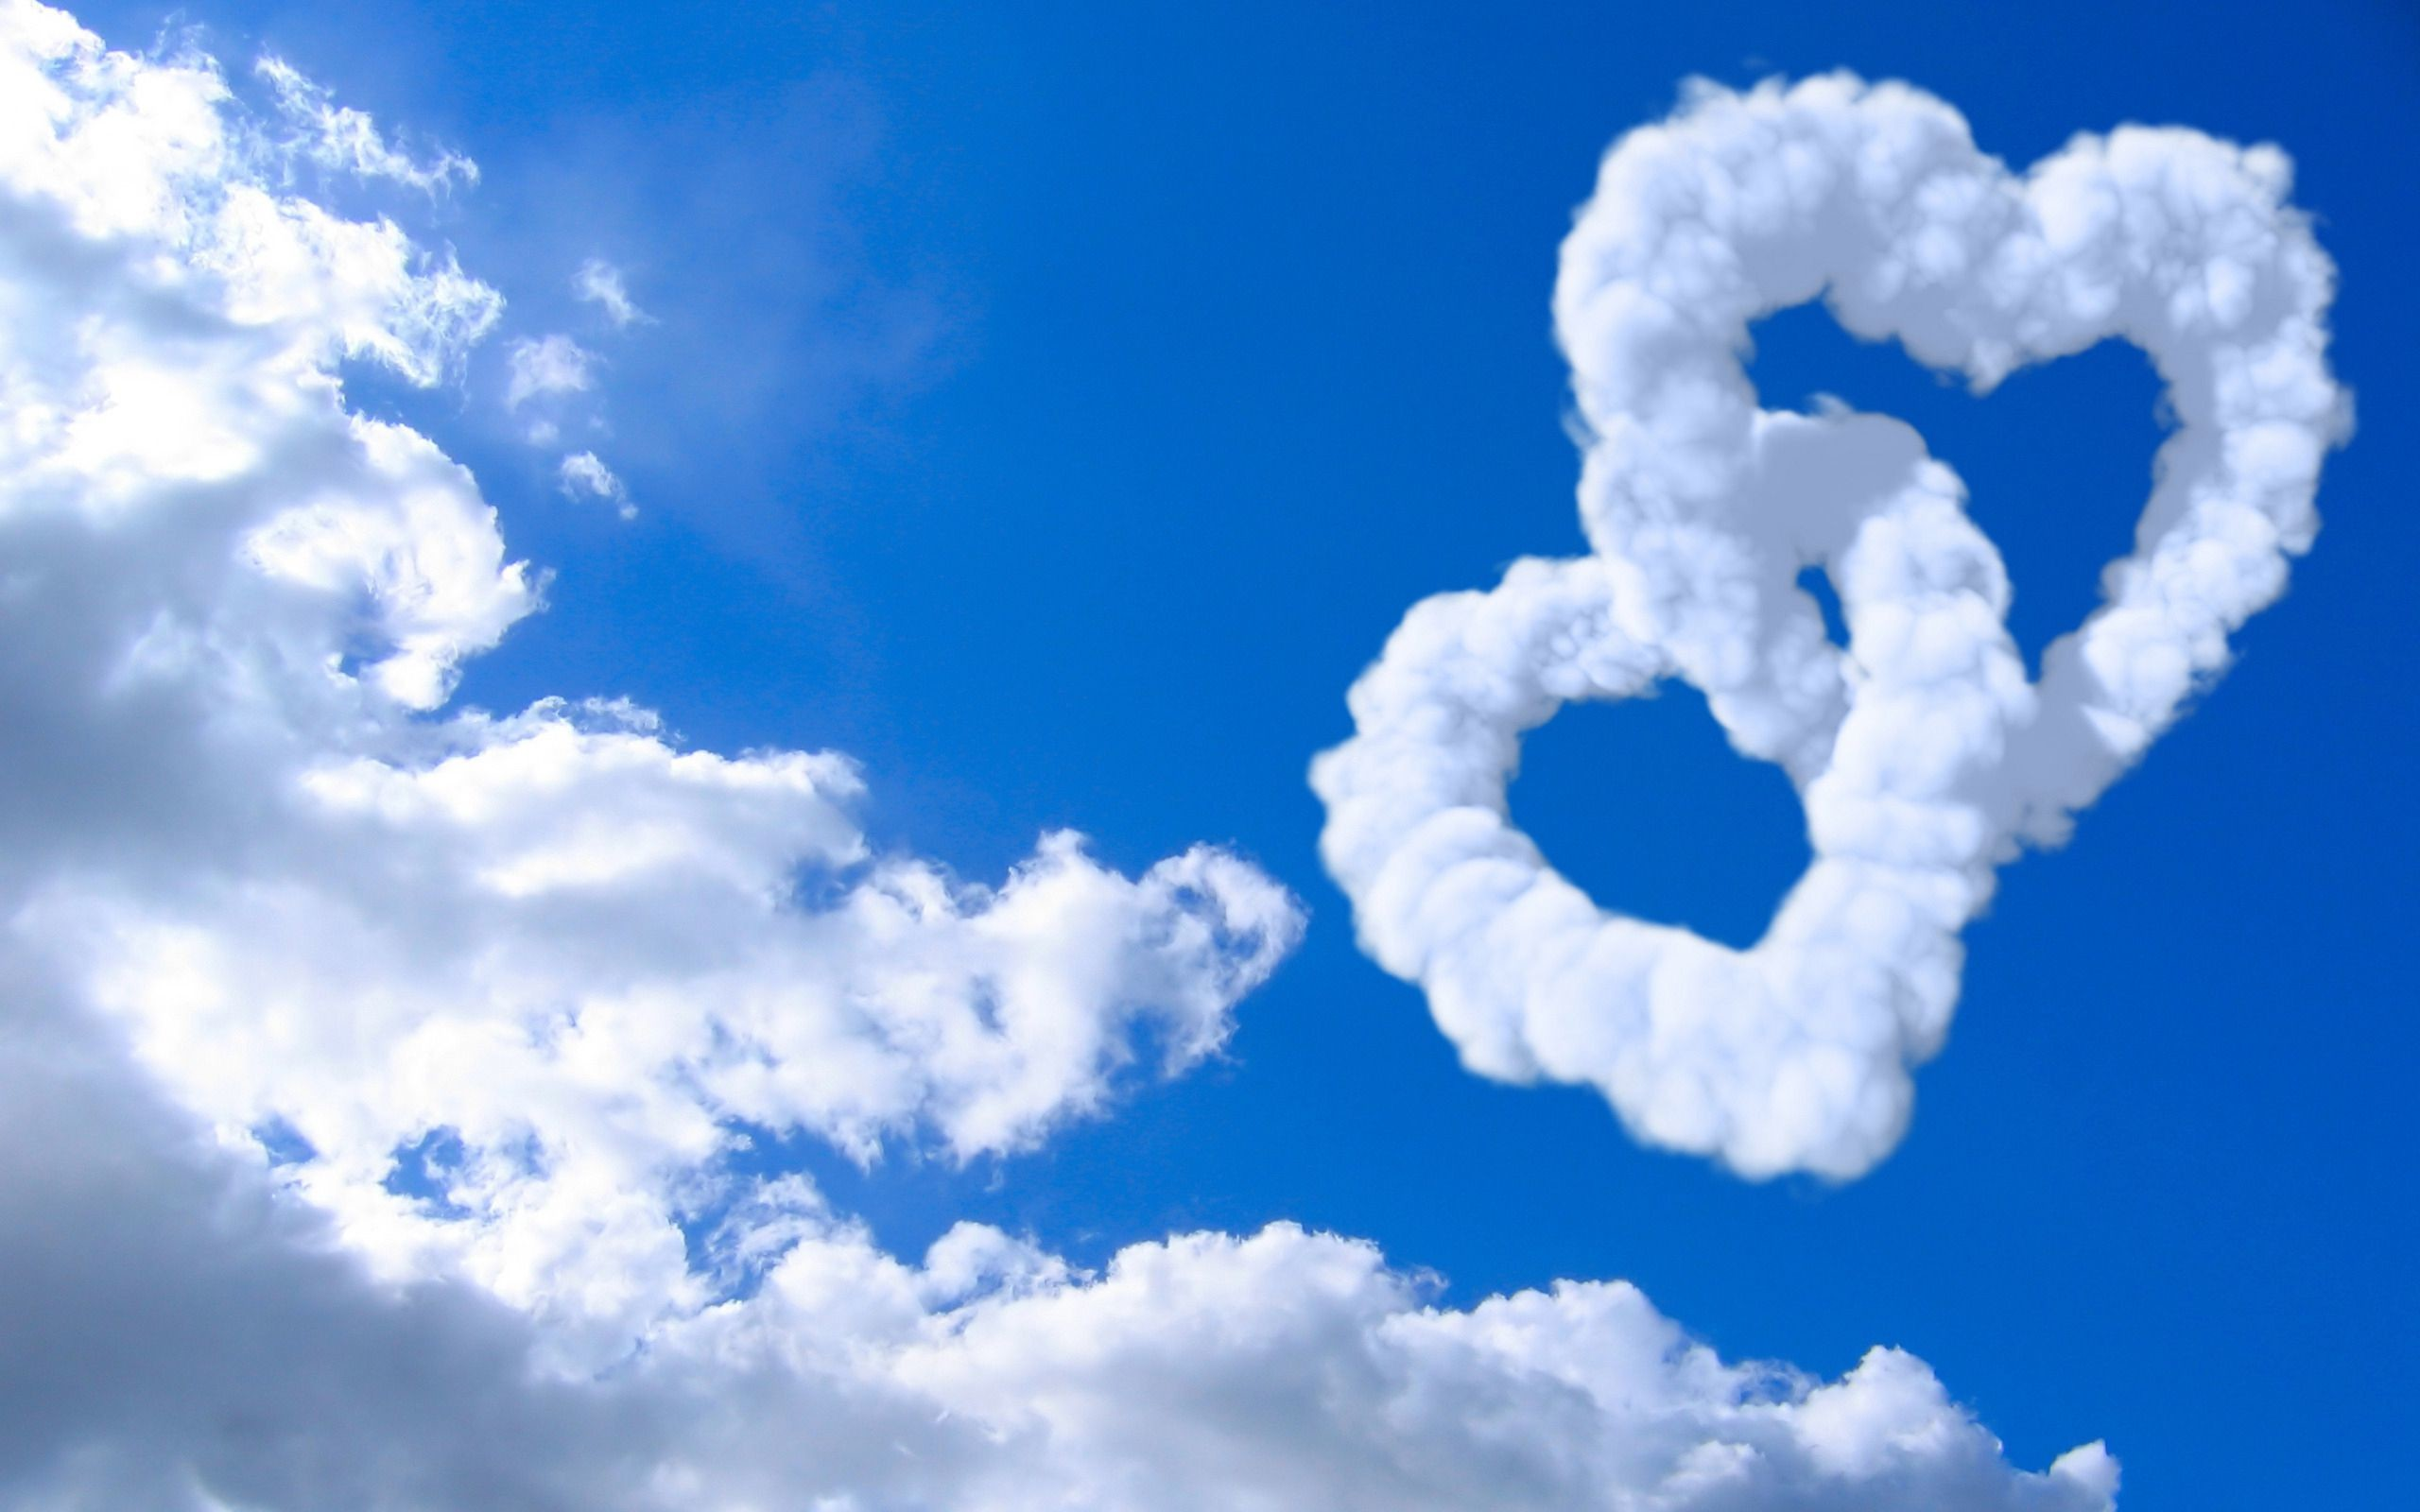 Hearts with Clouds and Blue Sky Background #1811